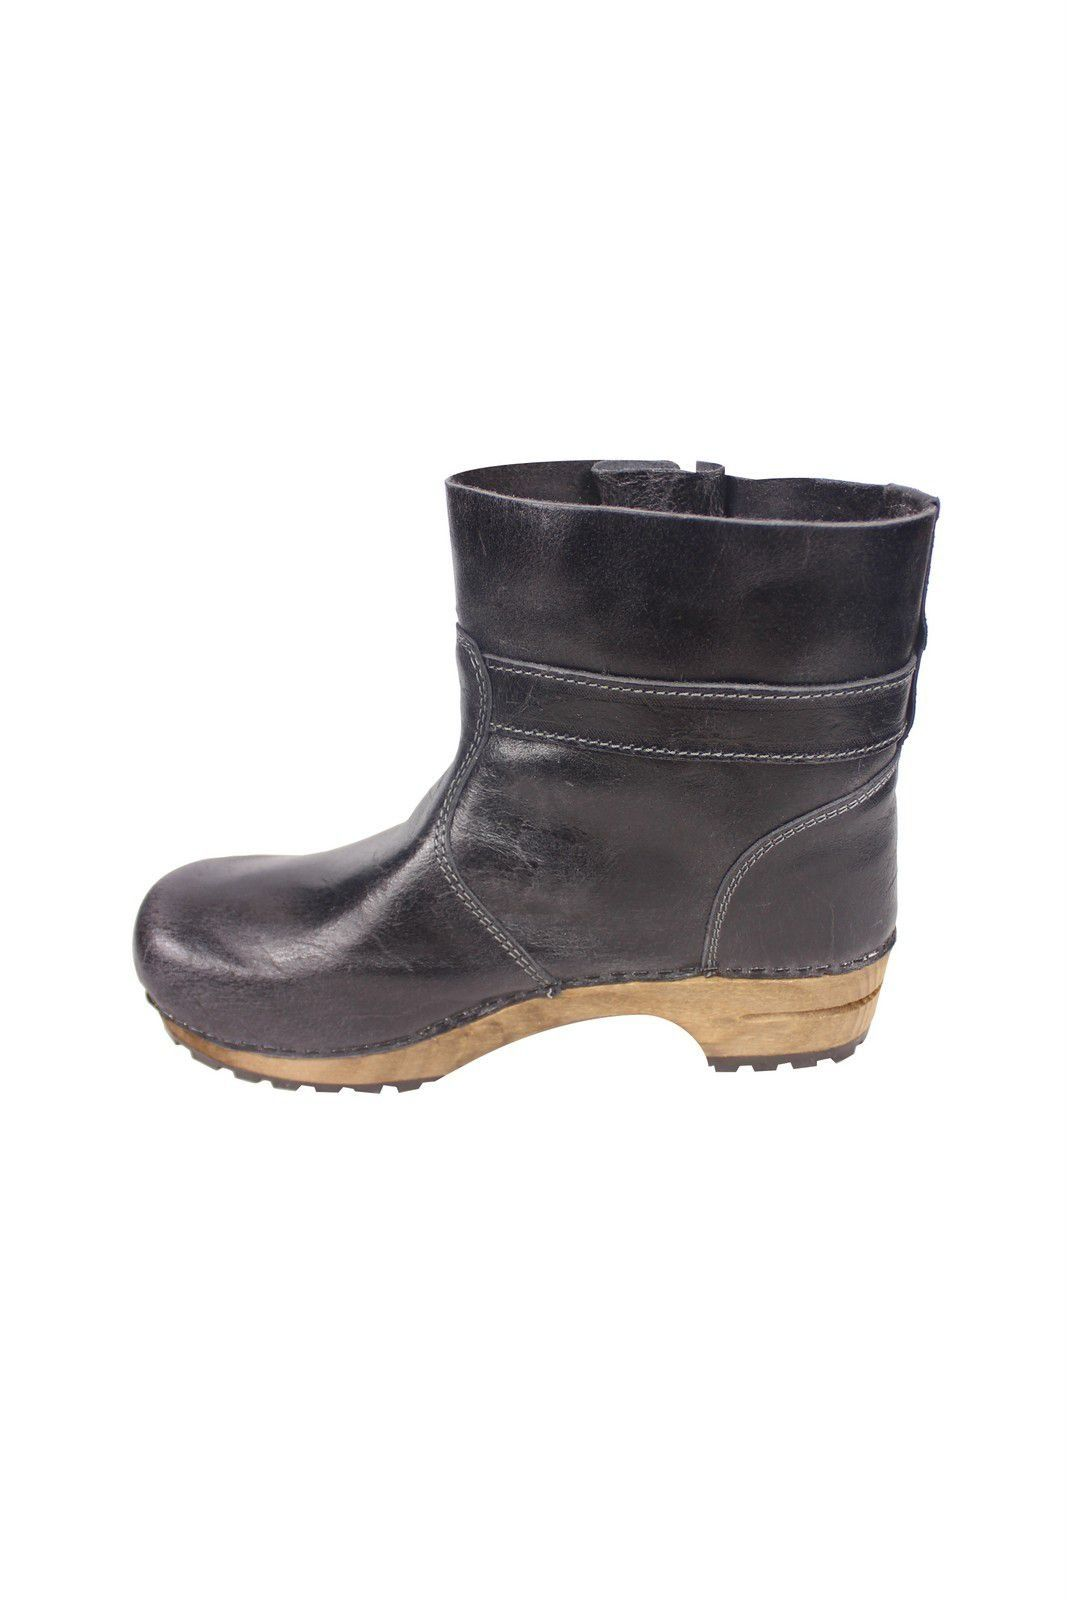 Sanita Mina Low Classic Clog Boot Black 452330 Rev Side 2